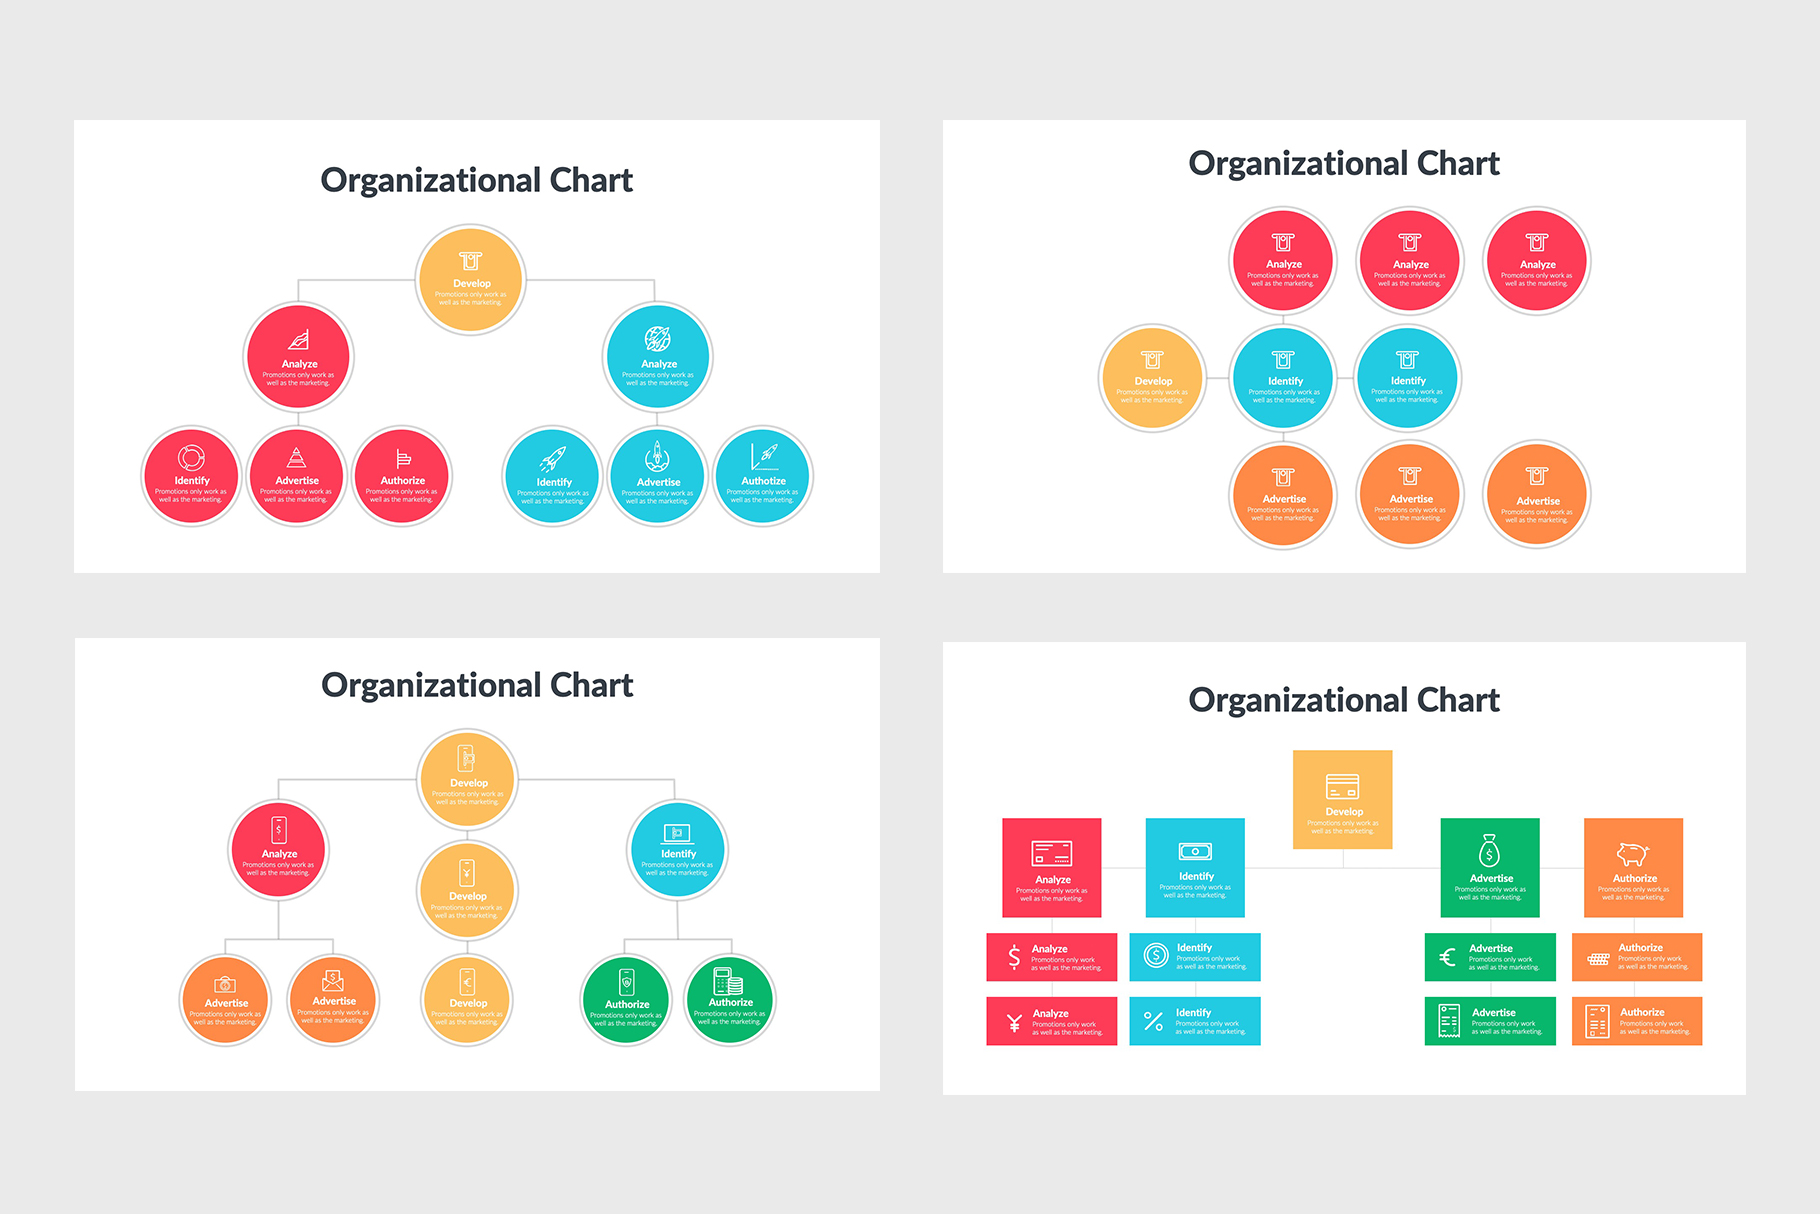 Organizational Charts for Your Concepts